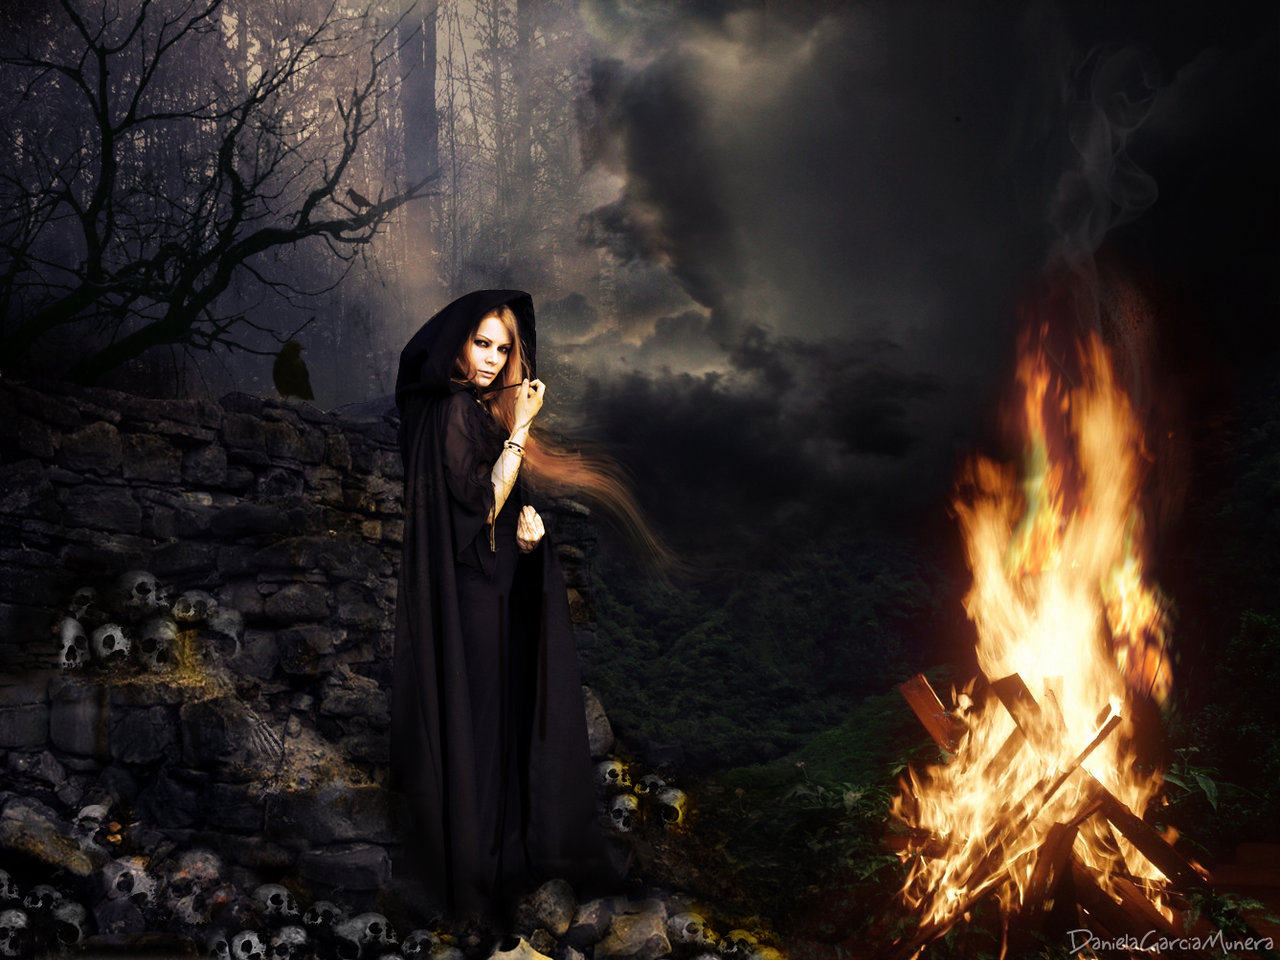 Talking About Ritual Magick: Of Shadows and Darkness - Future Path of Witchcraft